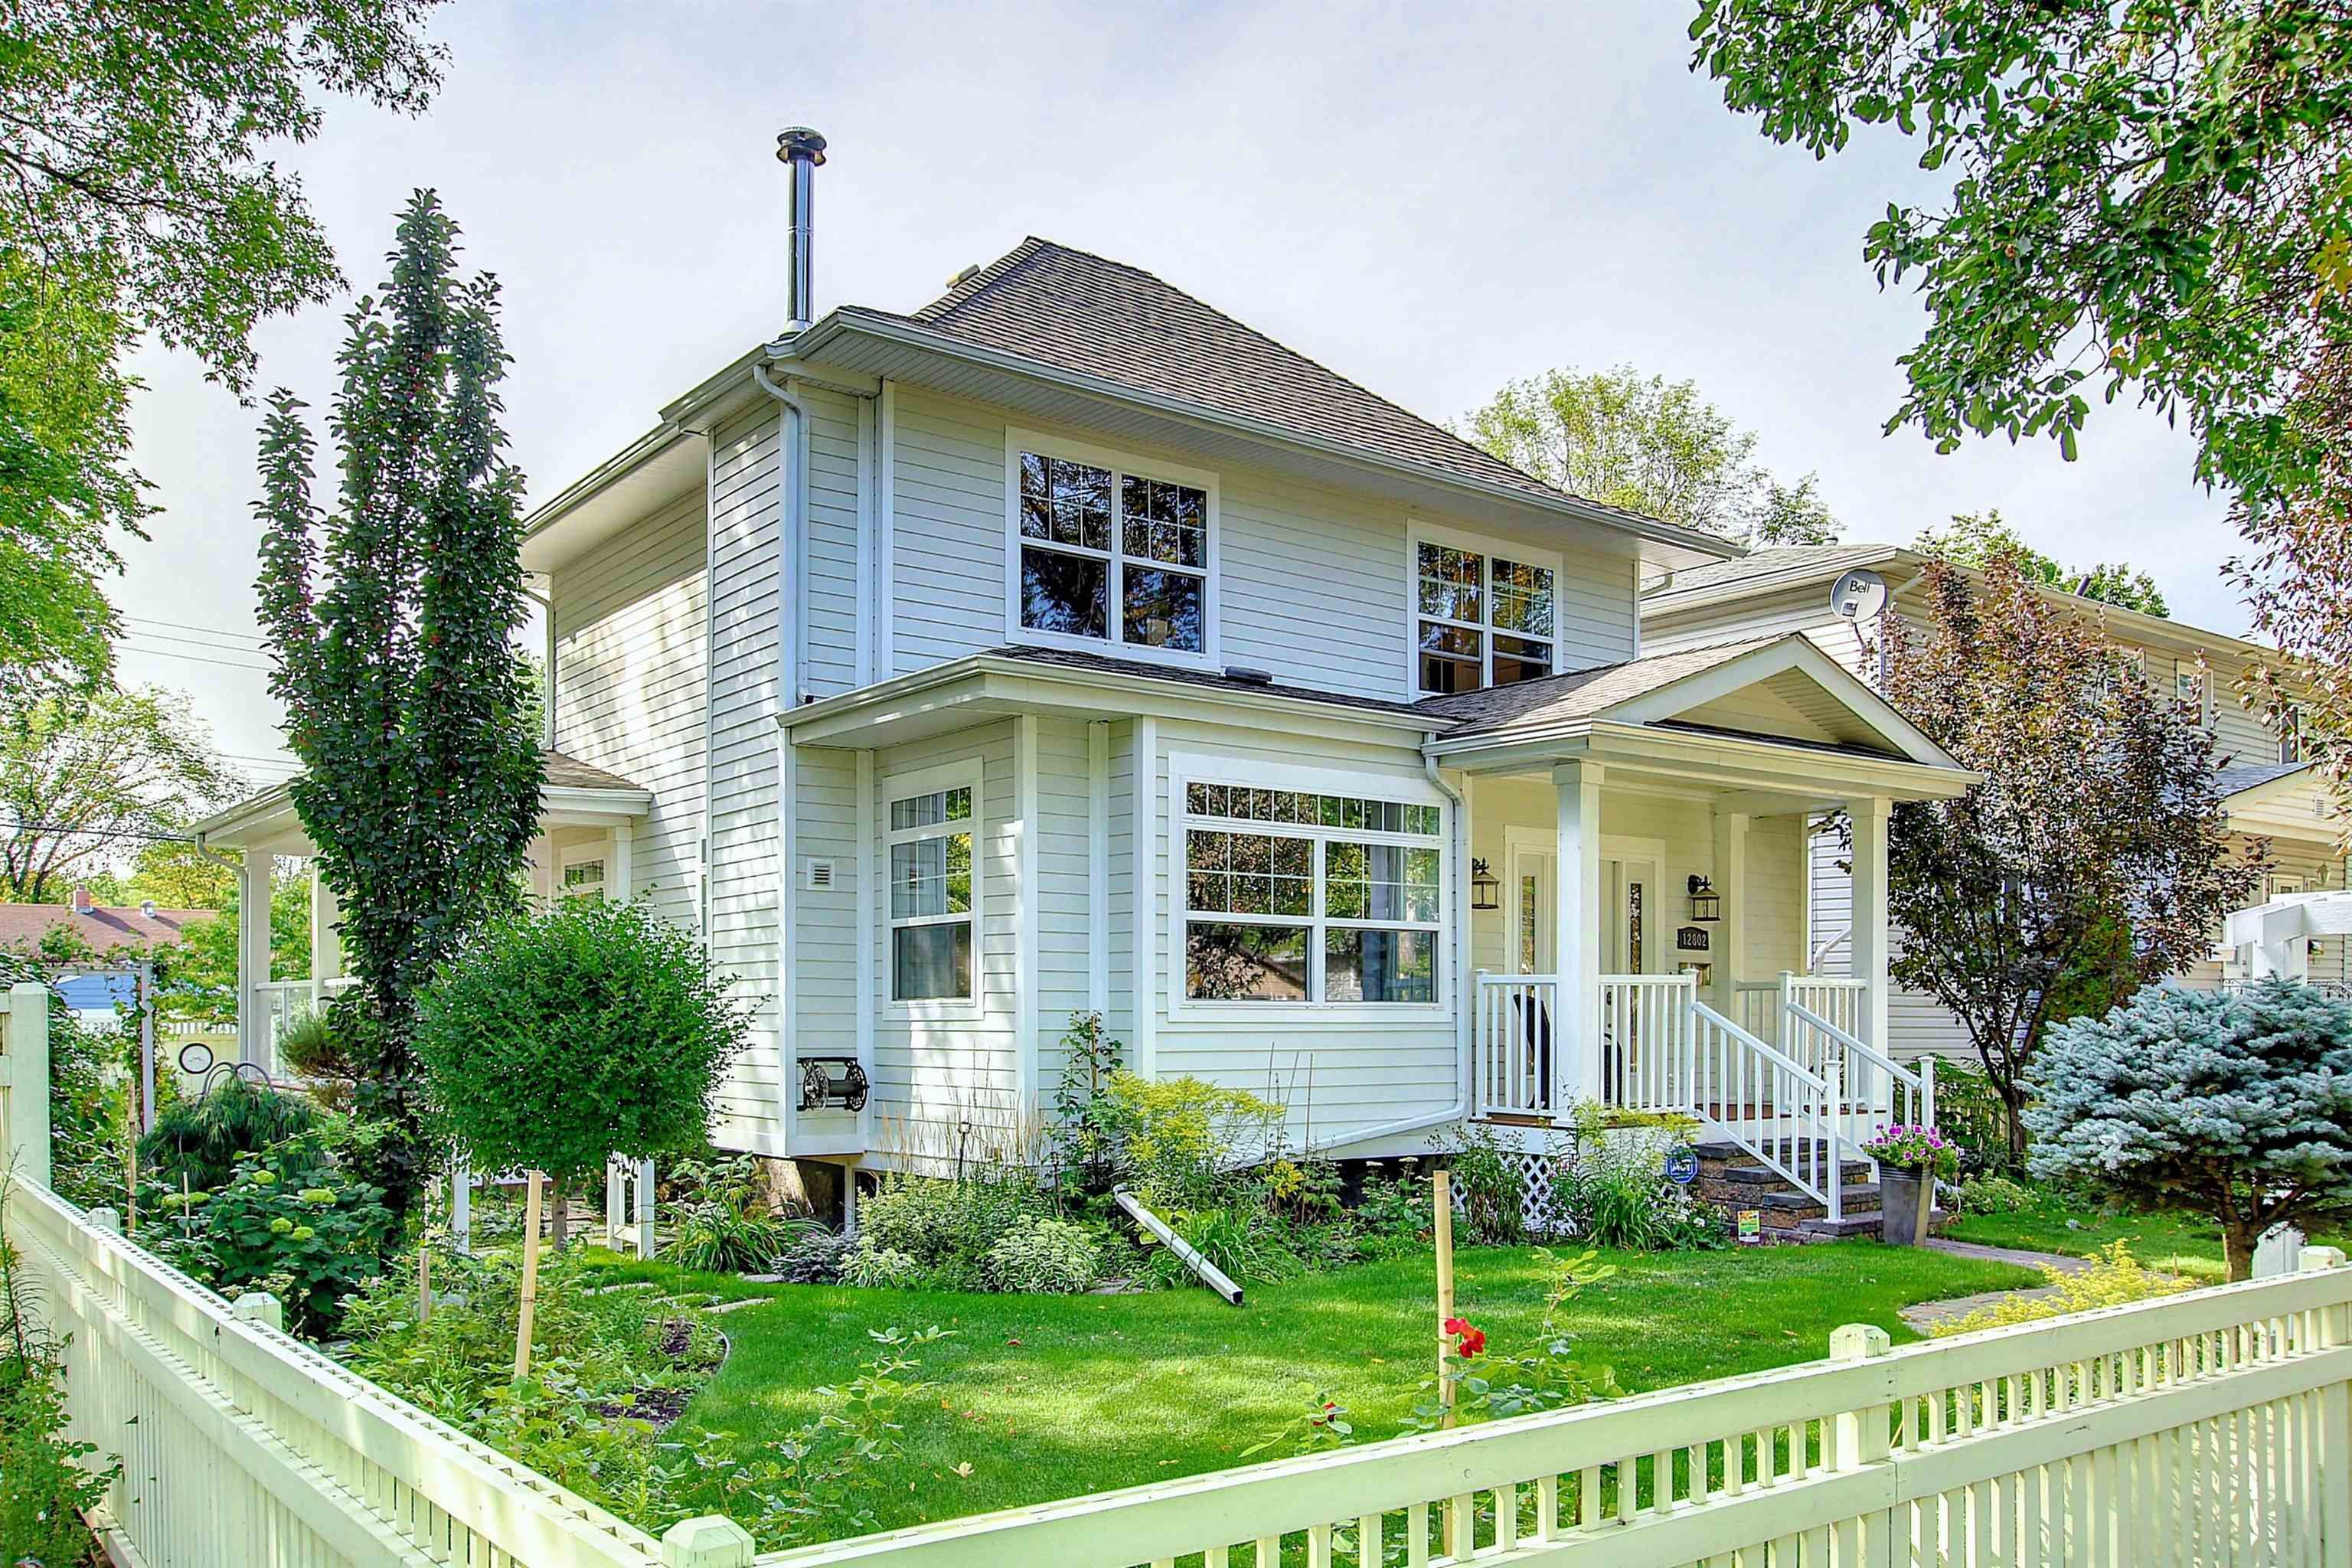 Main Photo: 12802 123a Street in Edmonton: Zone 01 House for sale : MLS®# E4261339